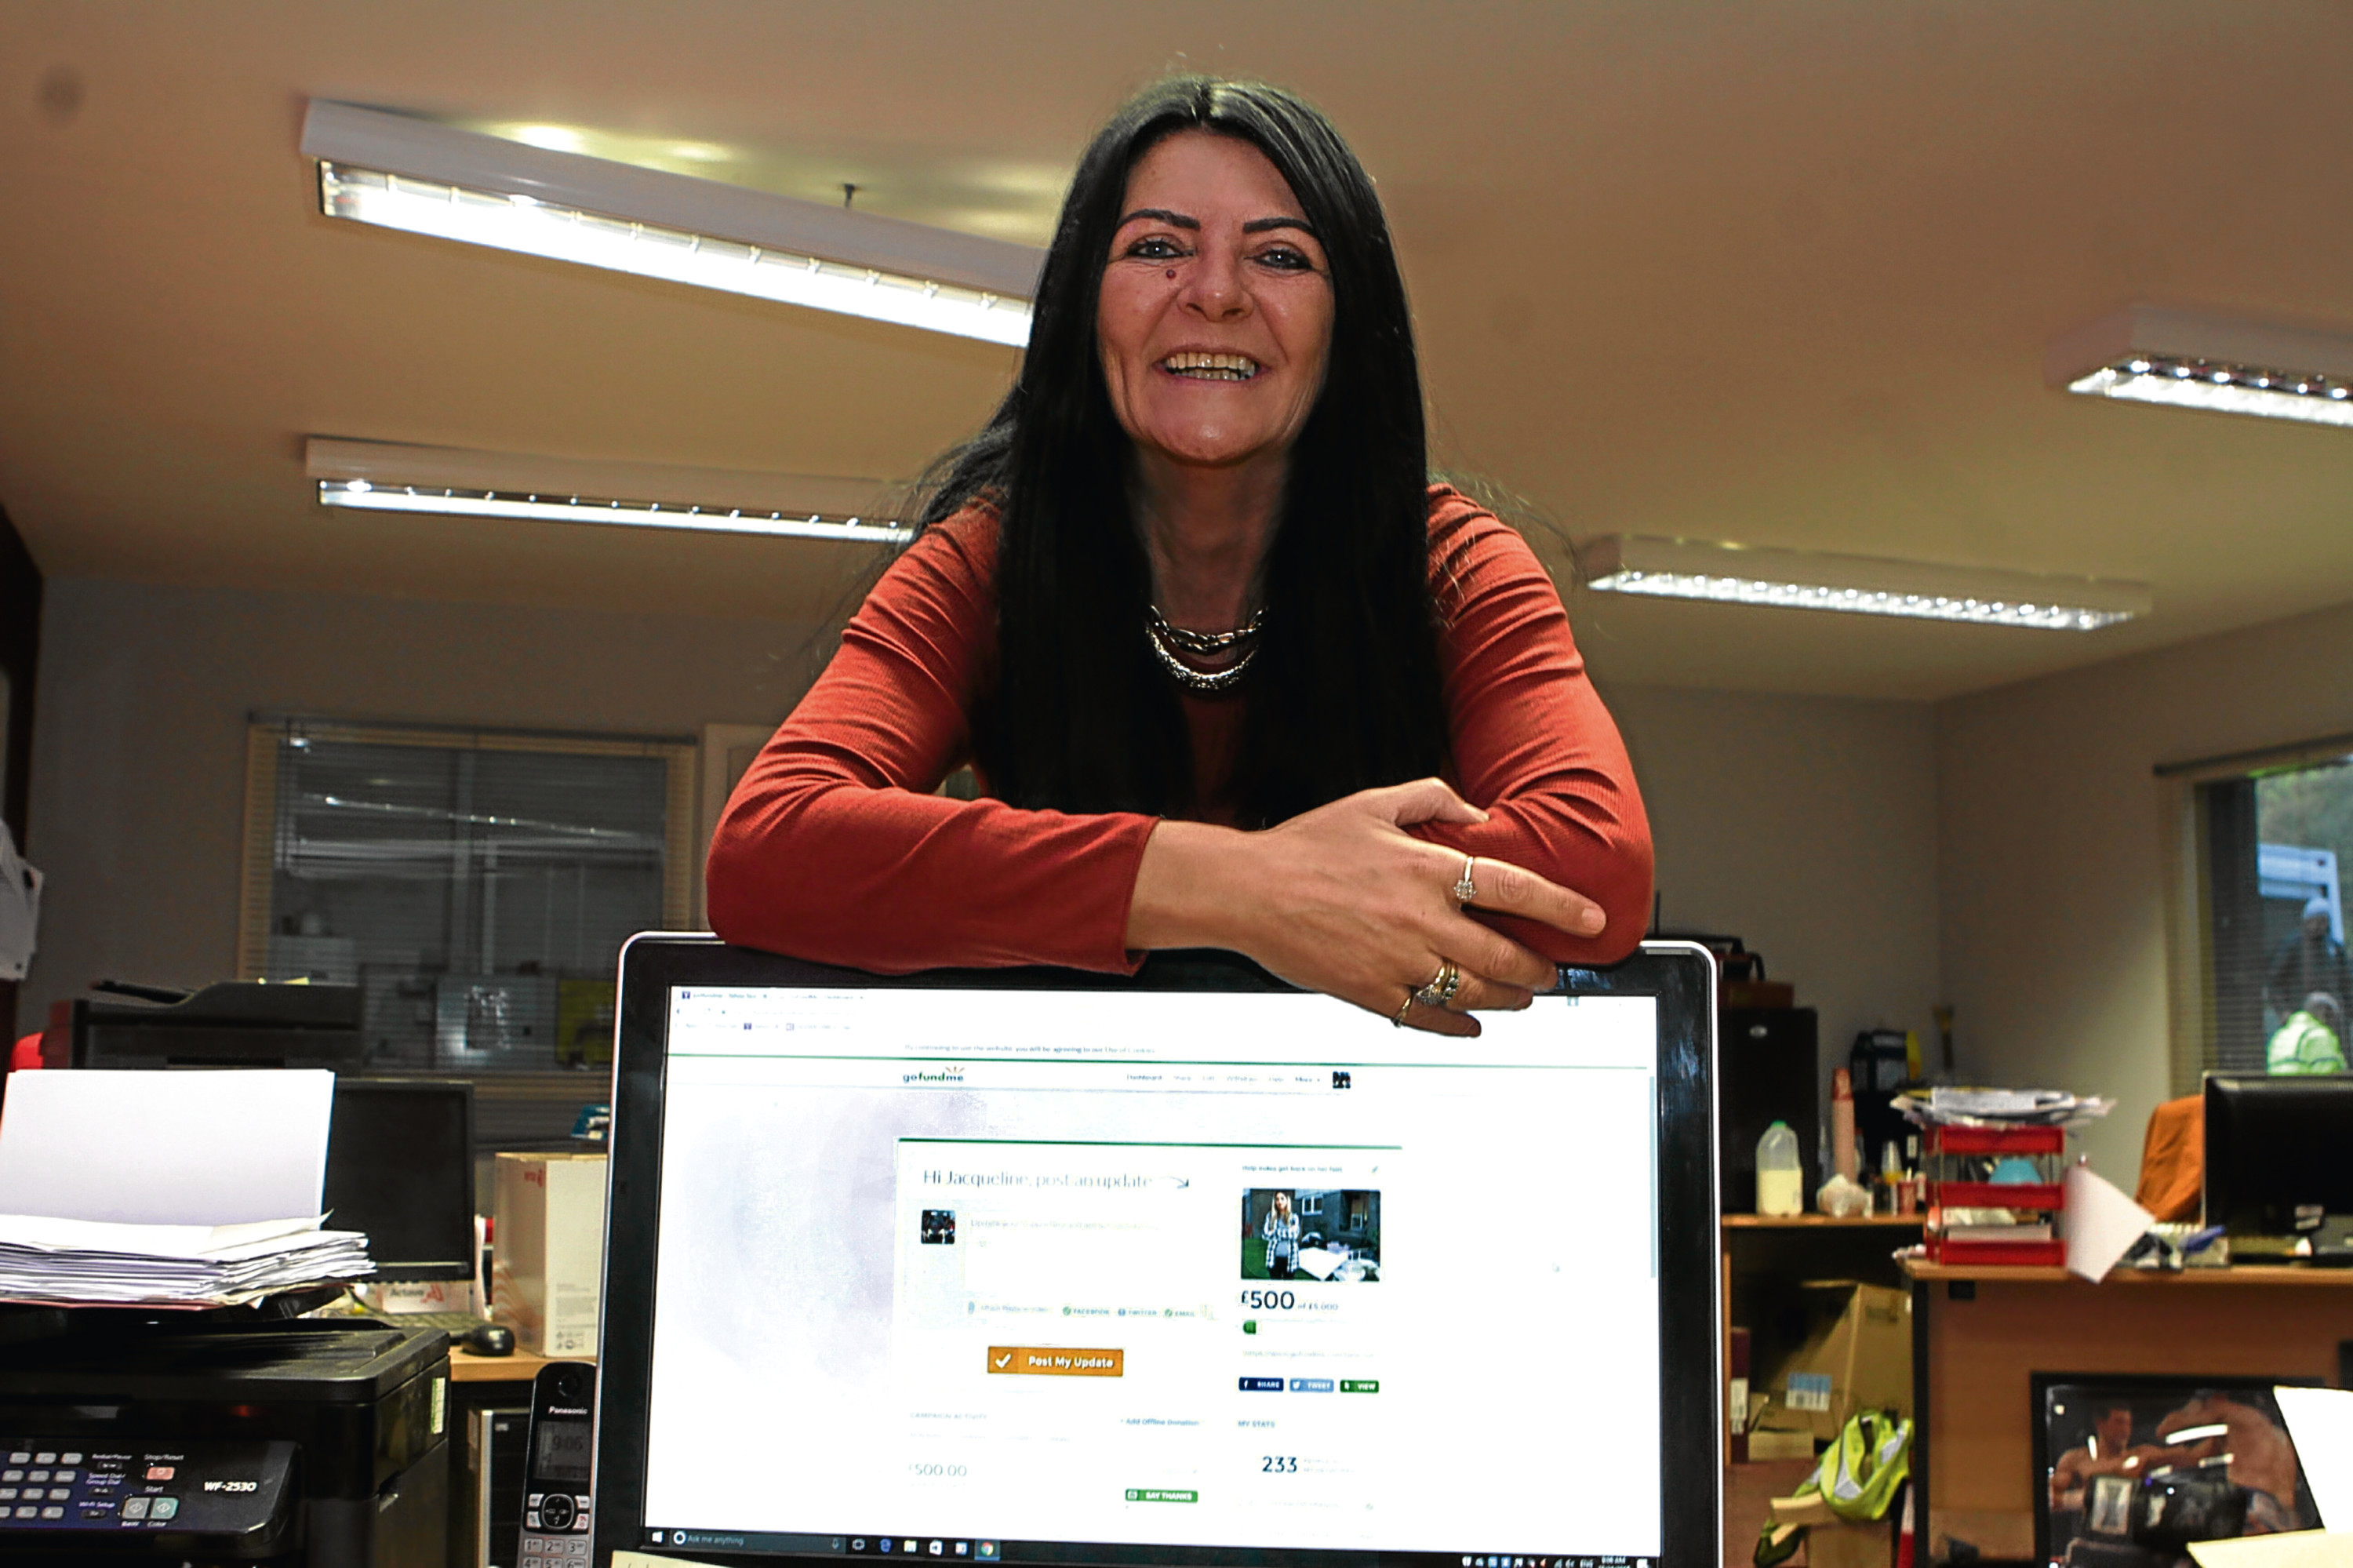 Jackie Bryceland shows off the fundraising page she has started.